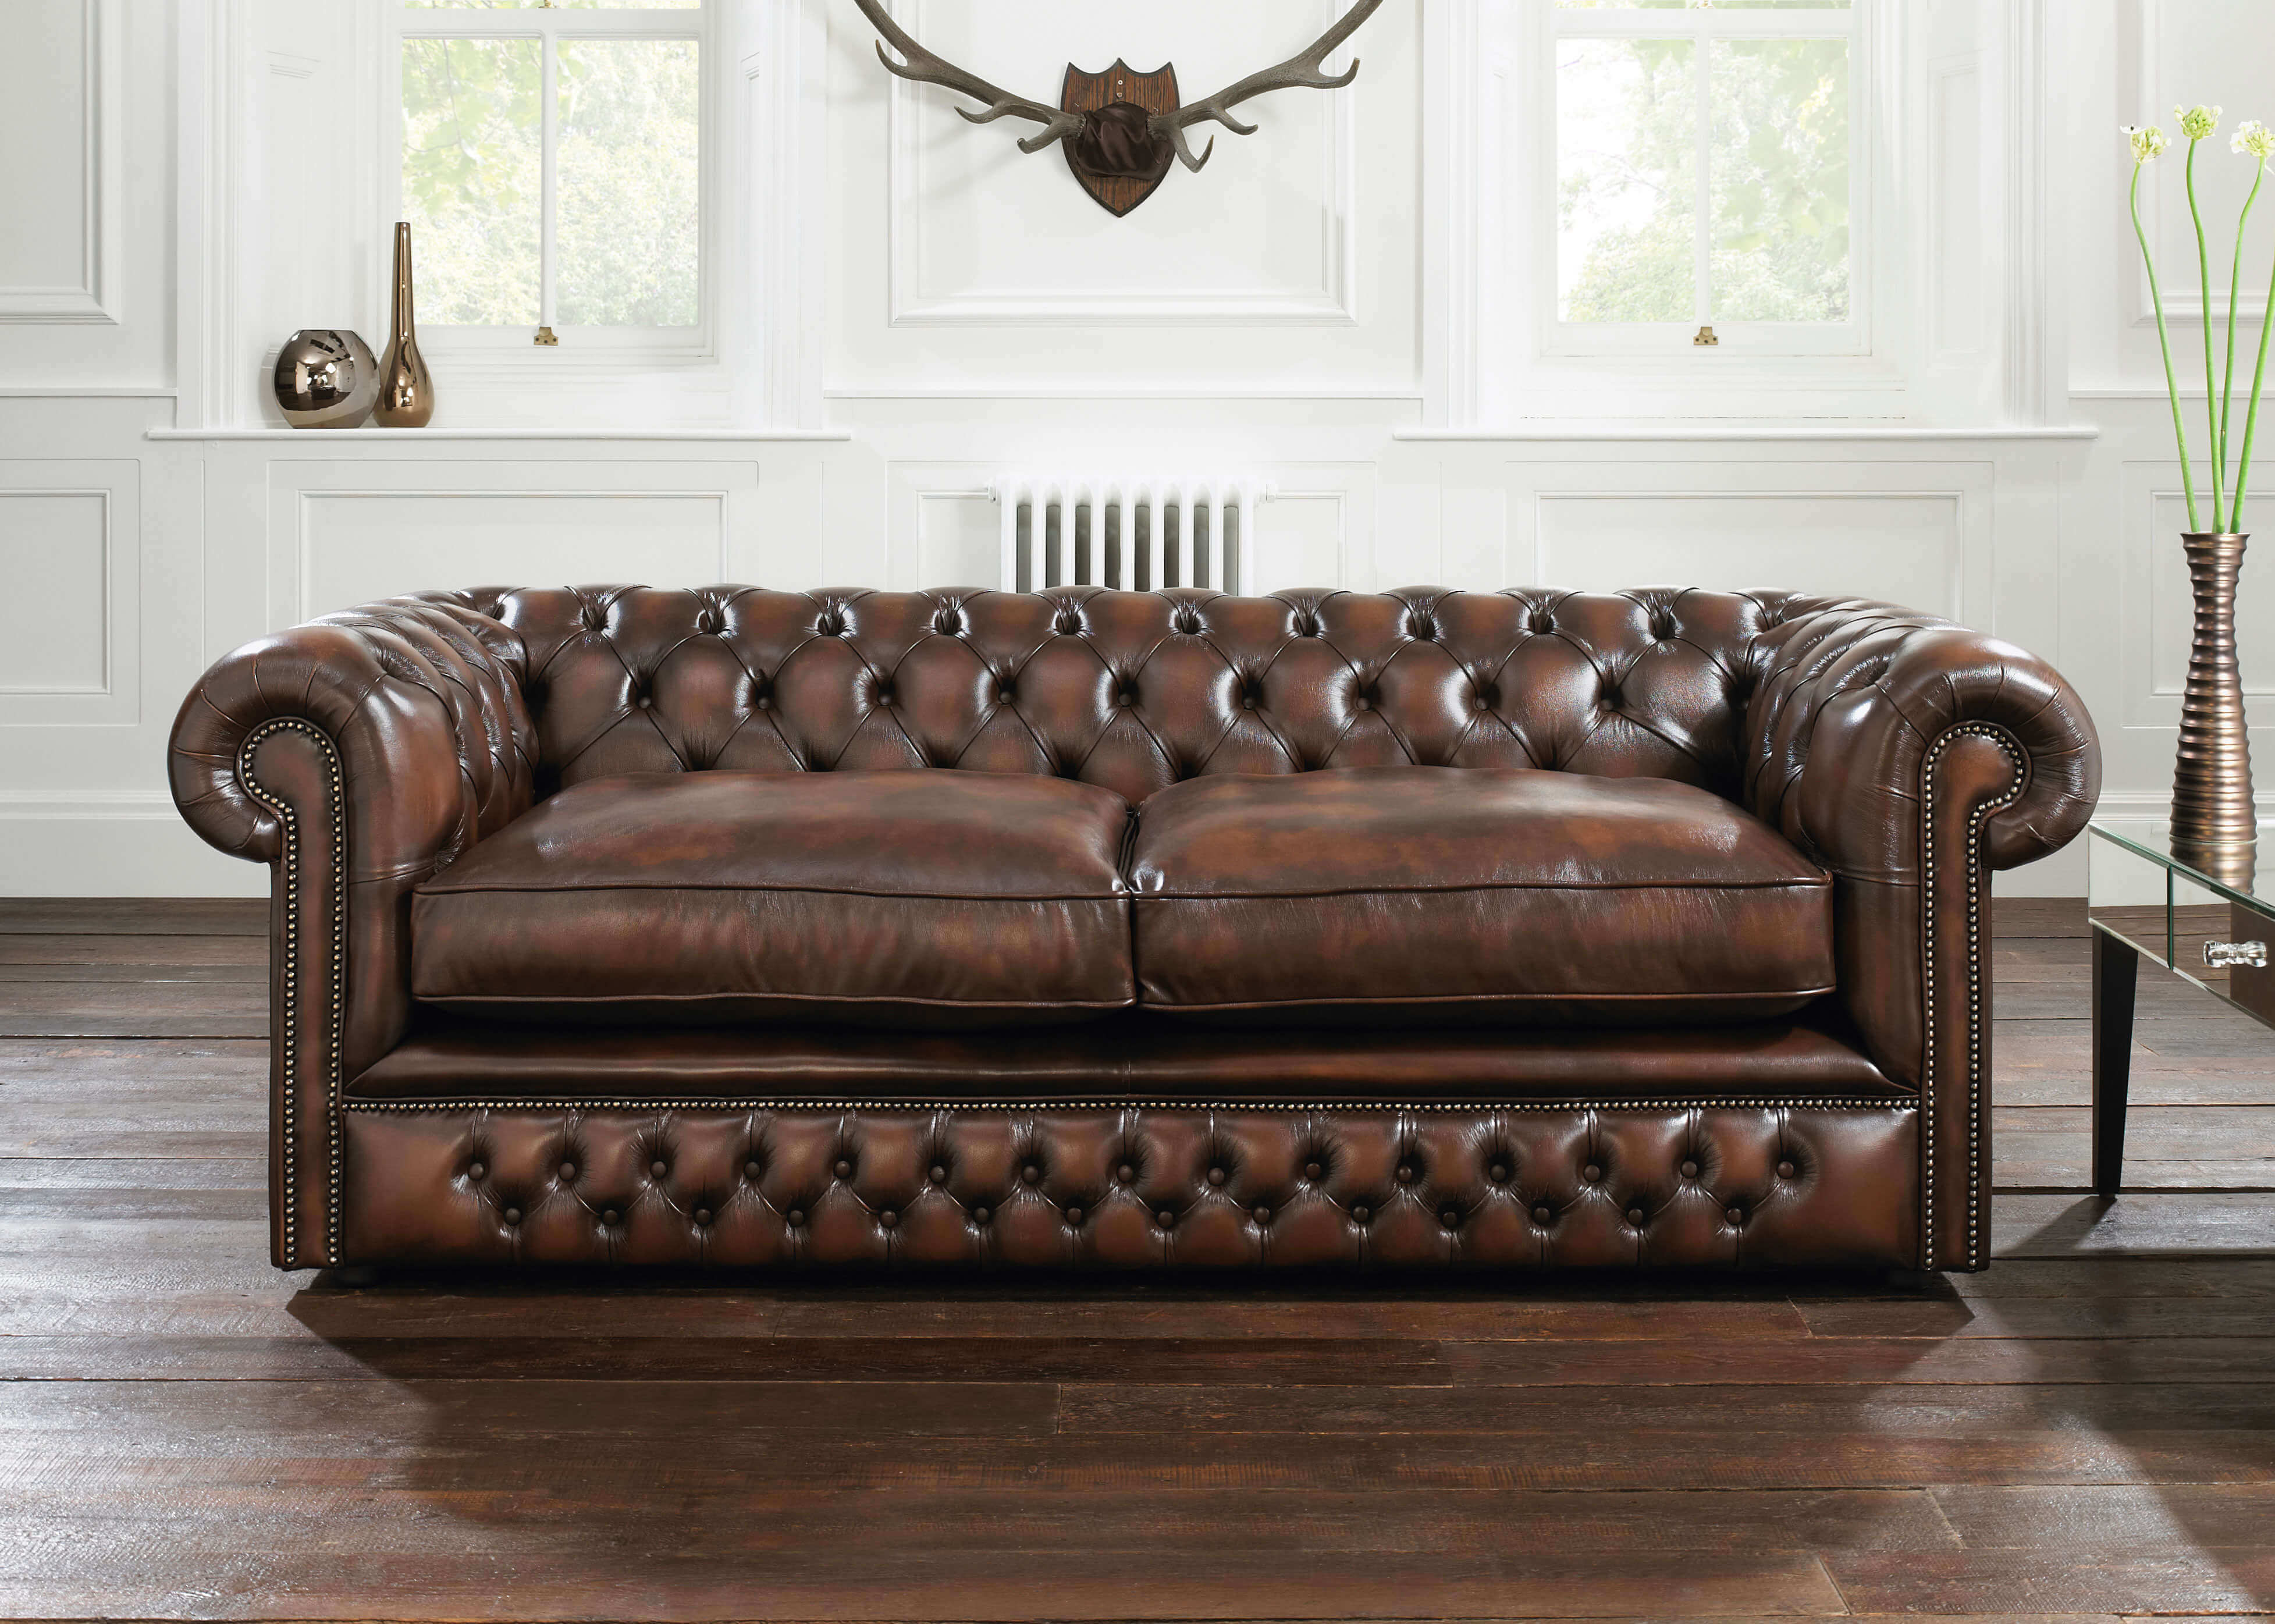 Darker Colour Leather Sofas Are Easier To Remove Or Disguise Stains. A  Vintage Truffle Coloured Chesterfield Sofa Will Be More Forgiving To Stains.